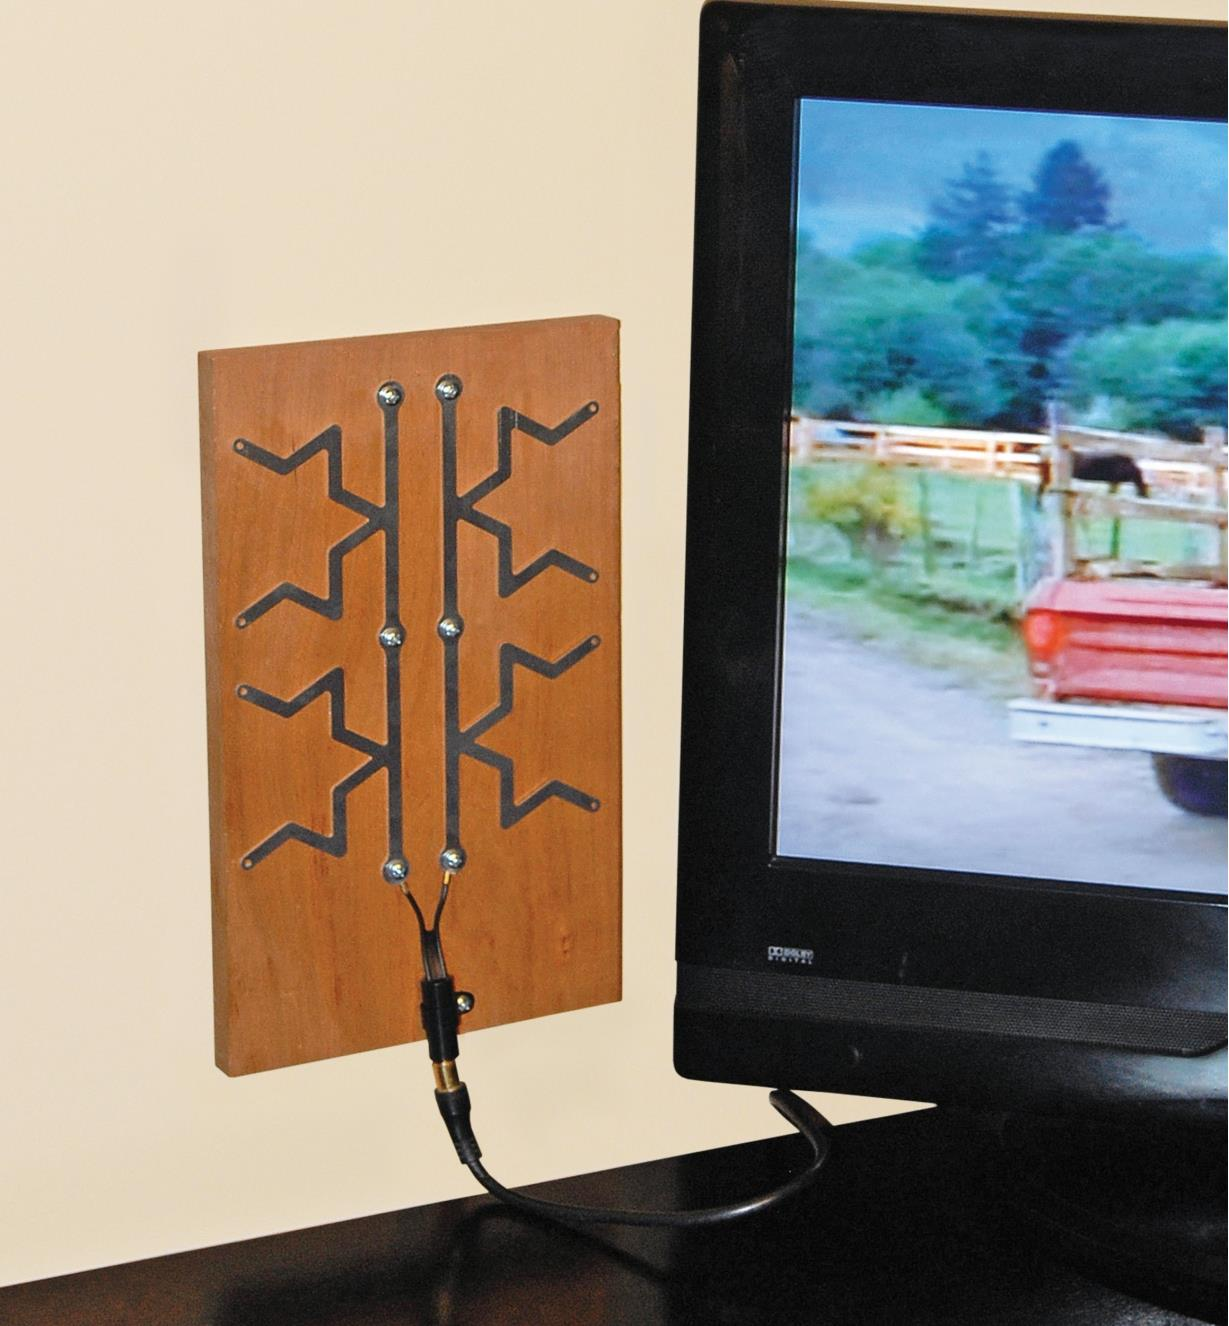 Fractal Antenna Kit mounted on a board and hooked up to a TV